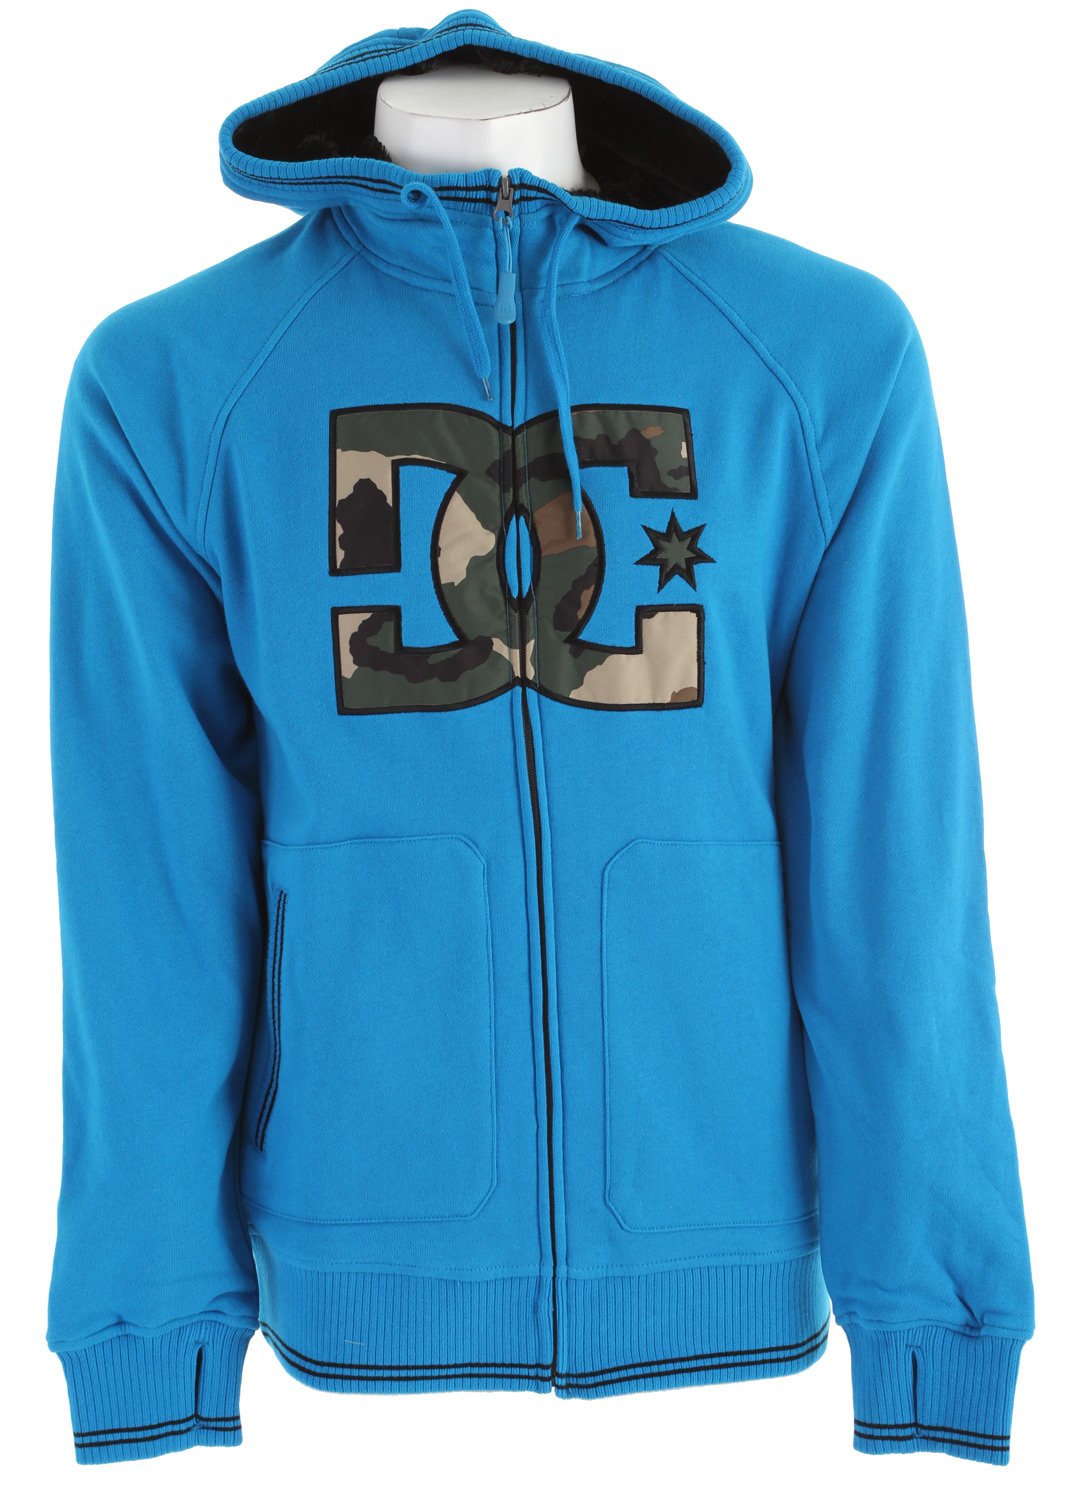 Skateboard Key Features of the DC Harper Hoodie: Water repellent fleece with fur hood and body lining Thumb hole cuffs Logo applique and media pocket Standard fit Full zip hood 60% cotton/40% polyester - $59.95